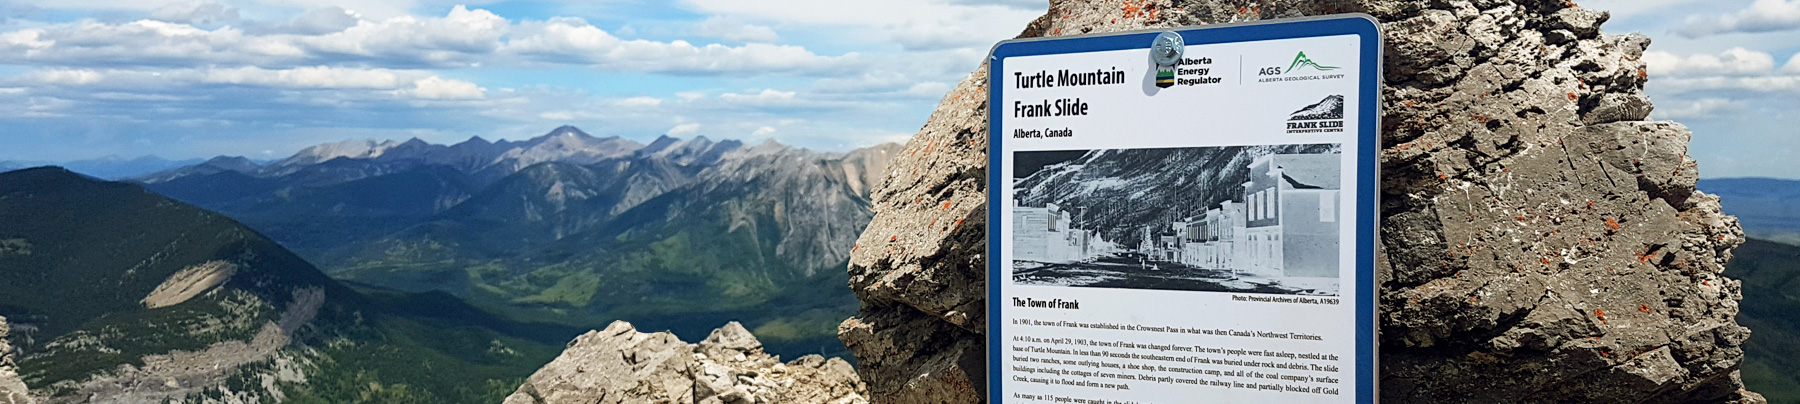 Modernizing a Moving Mountain's Monitoring System